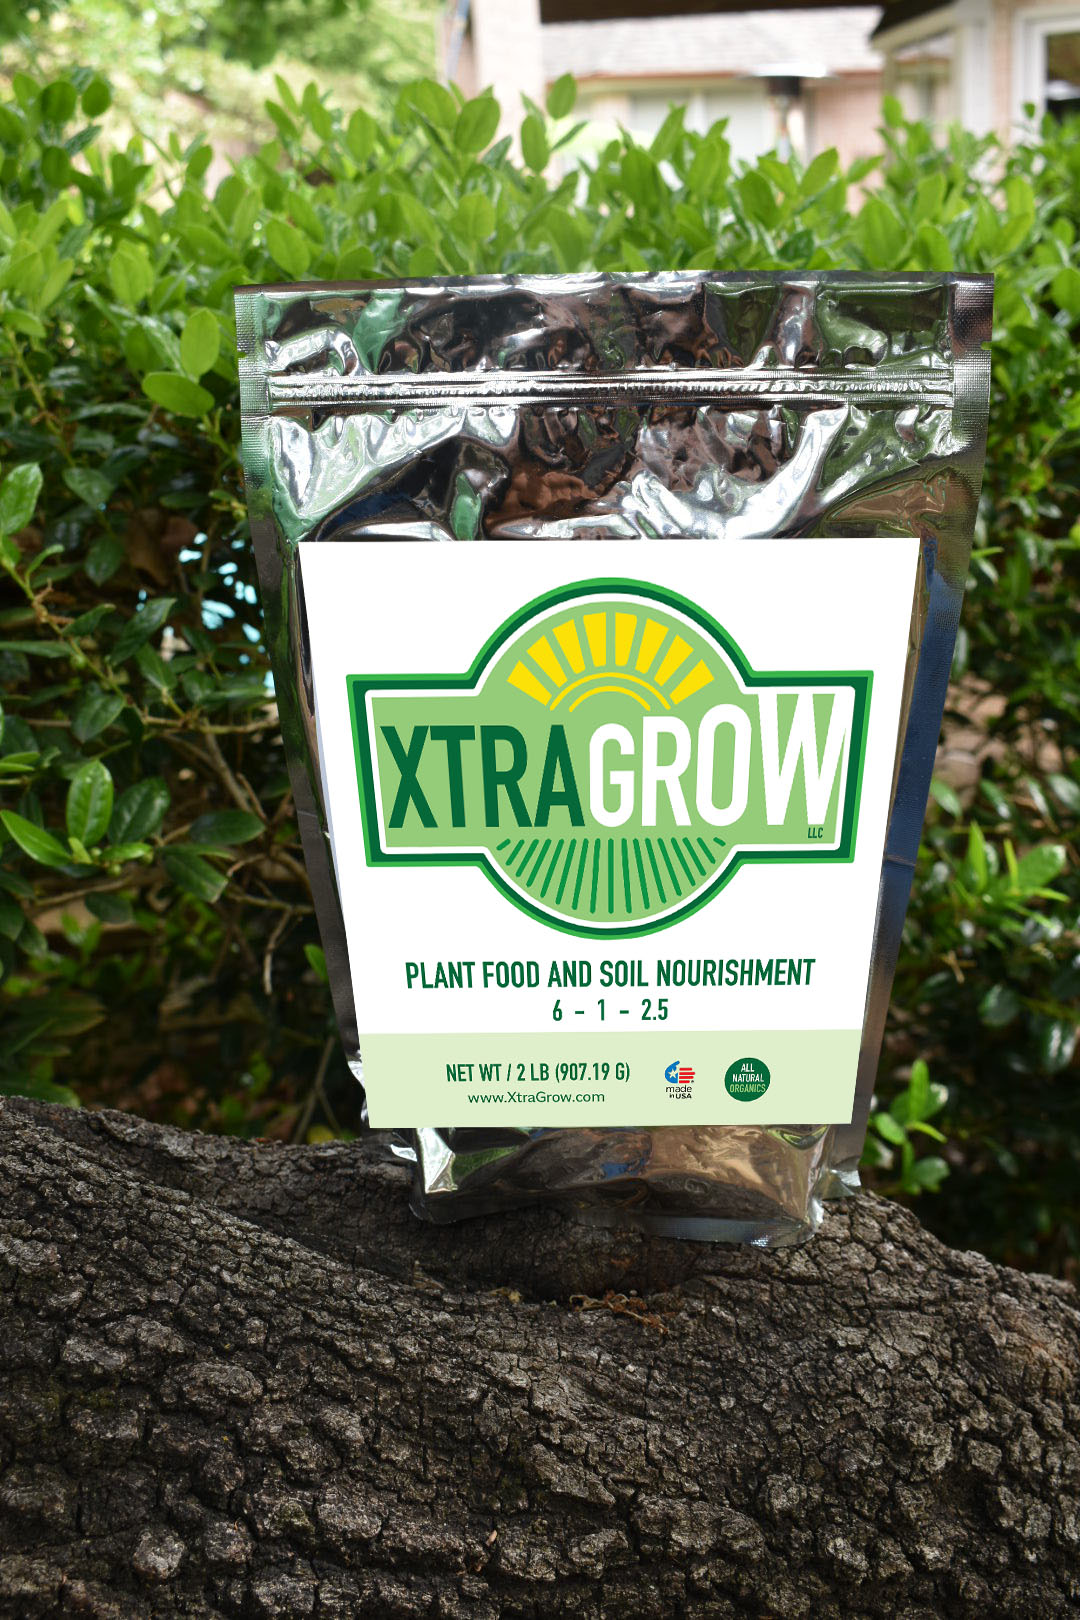 Premium Organic Plant Based Fertilizer Video Xtragrow on tree trunk 1